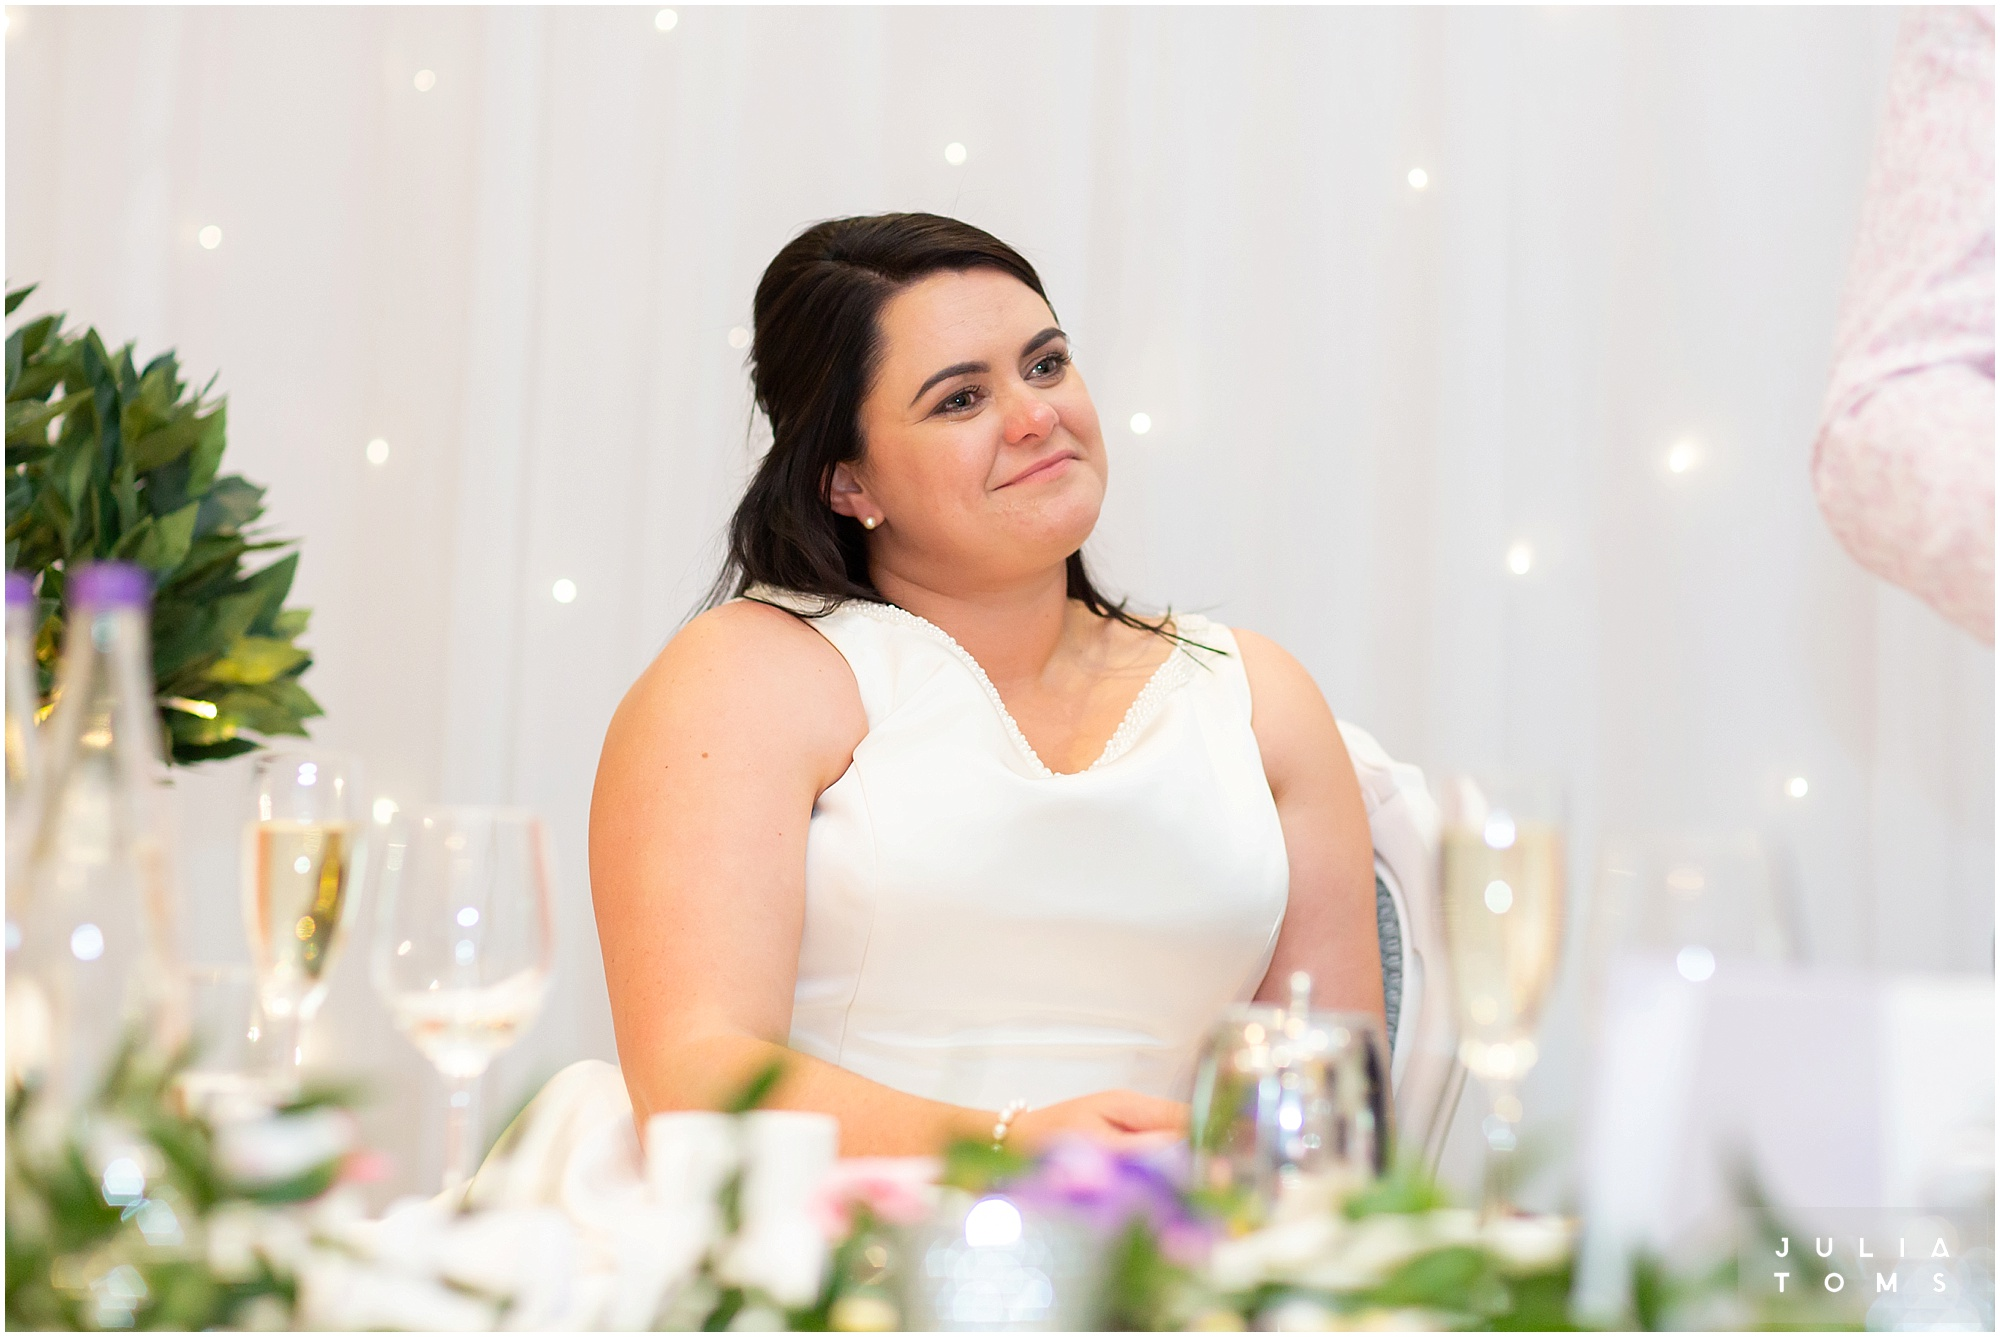 hampshire_wedding_photographer_juliatoms_077.jpg